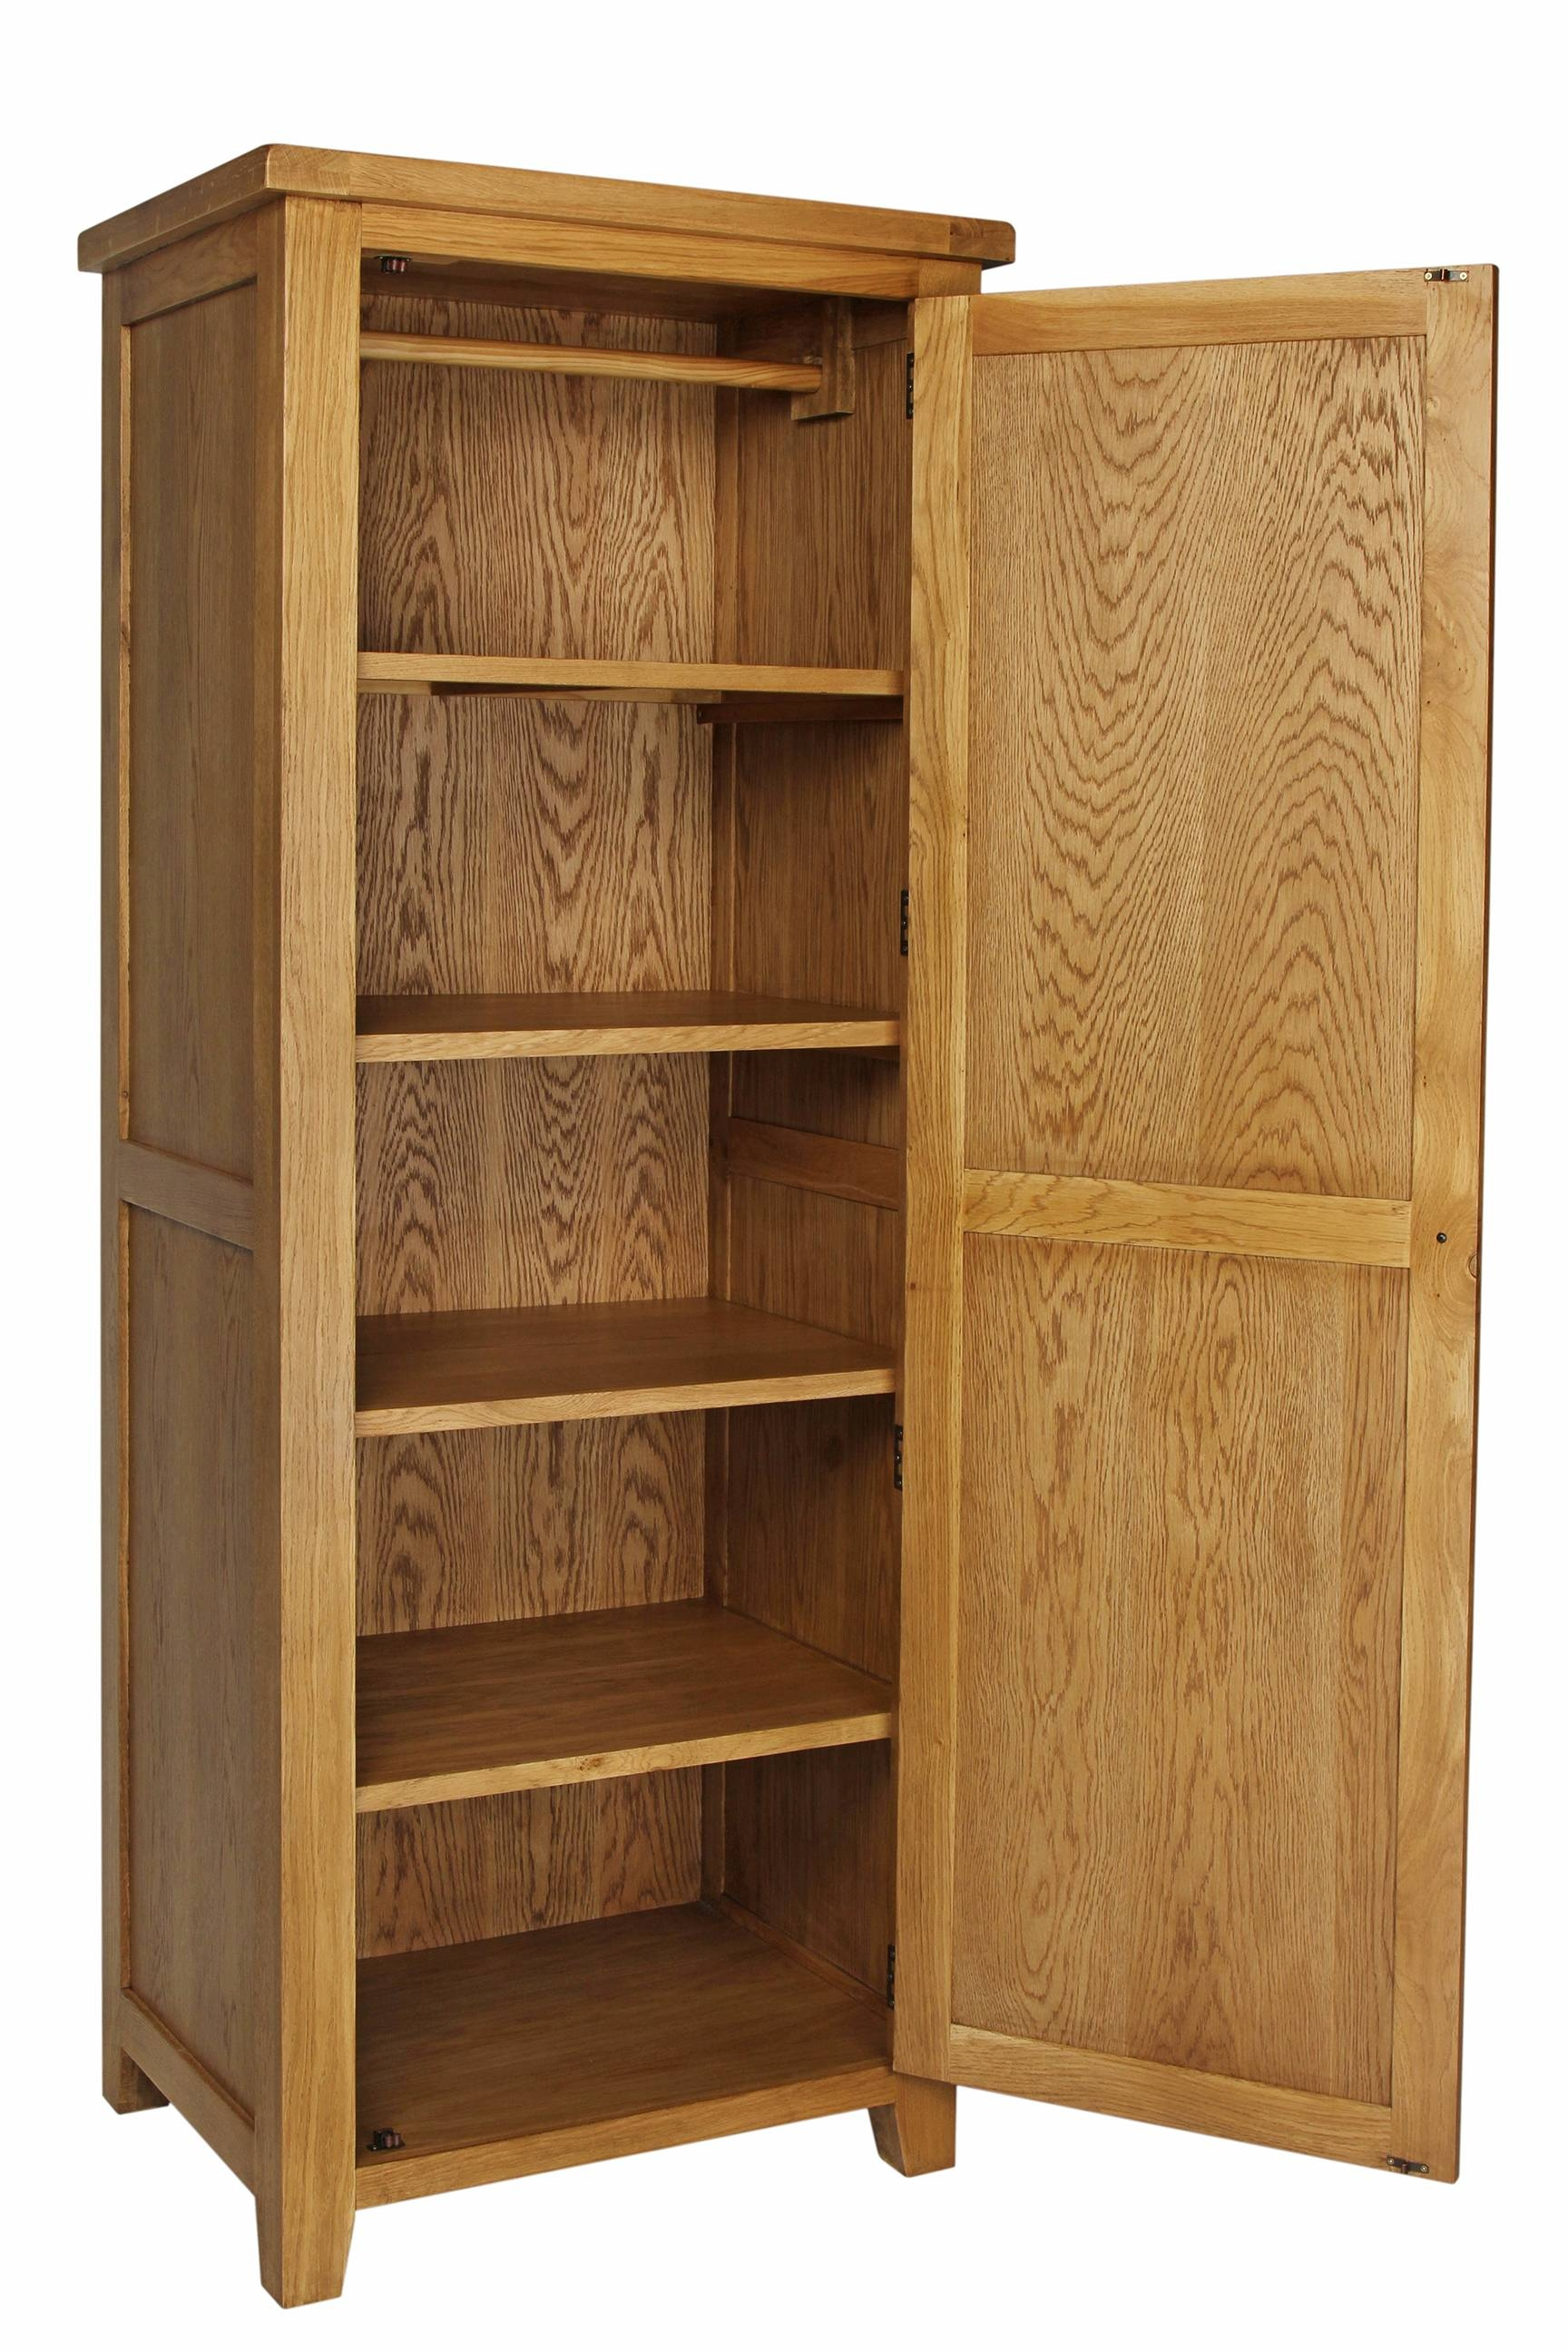 Oak Single Wardrobe - Furniture Importers for Single Oak Wardrobes With Drawers (Image 8 of 15)